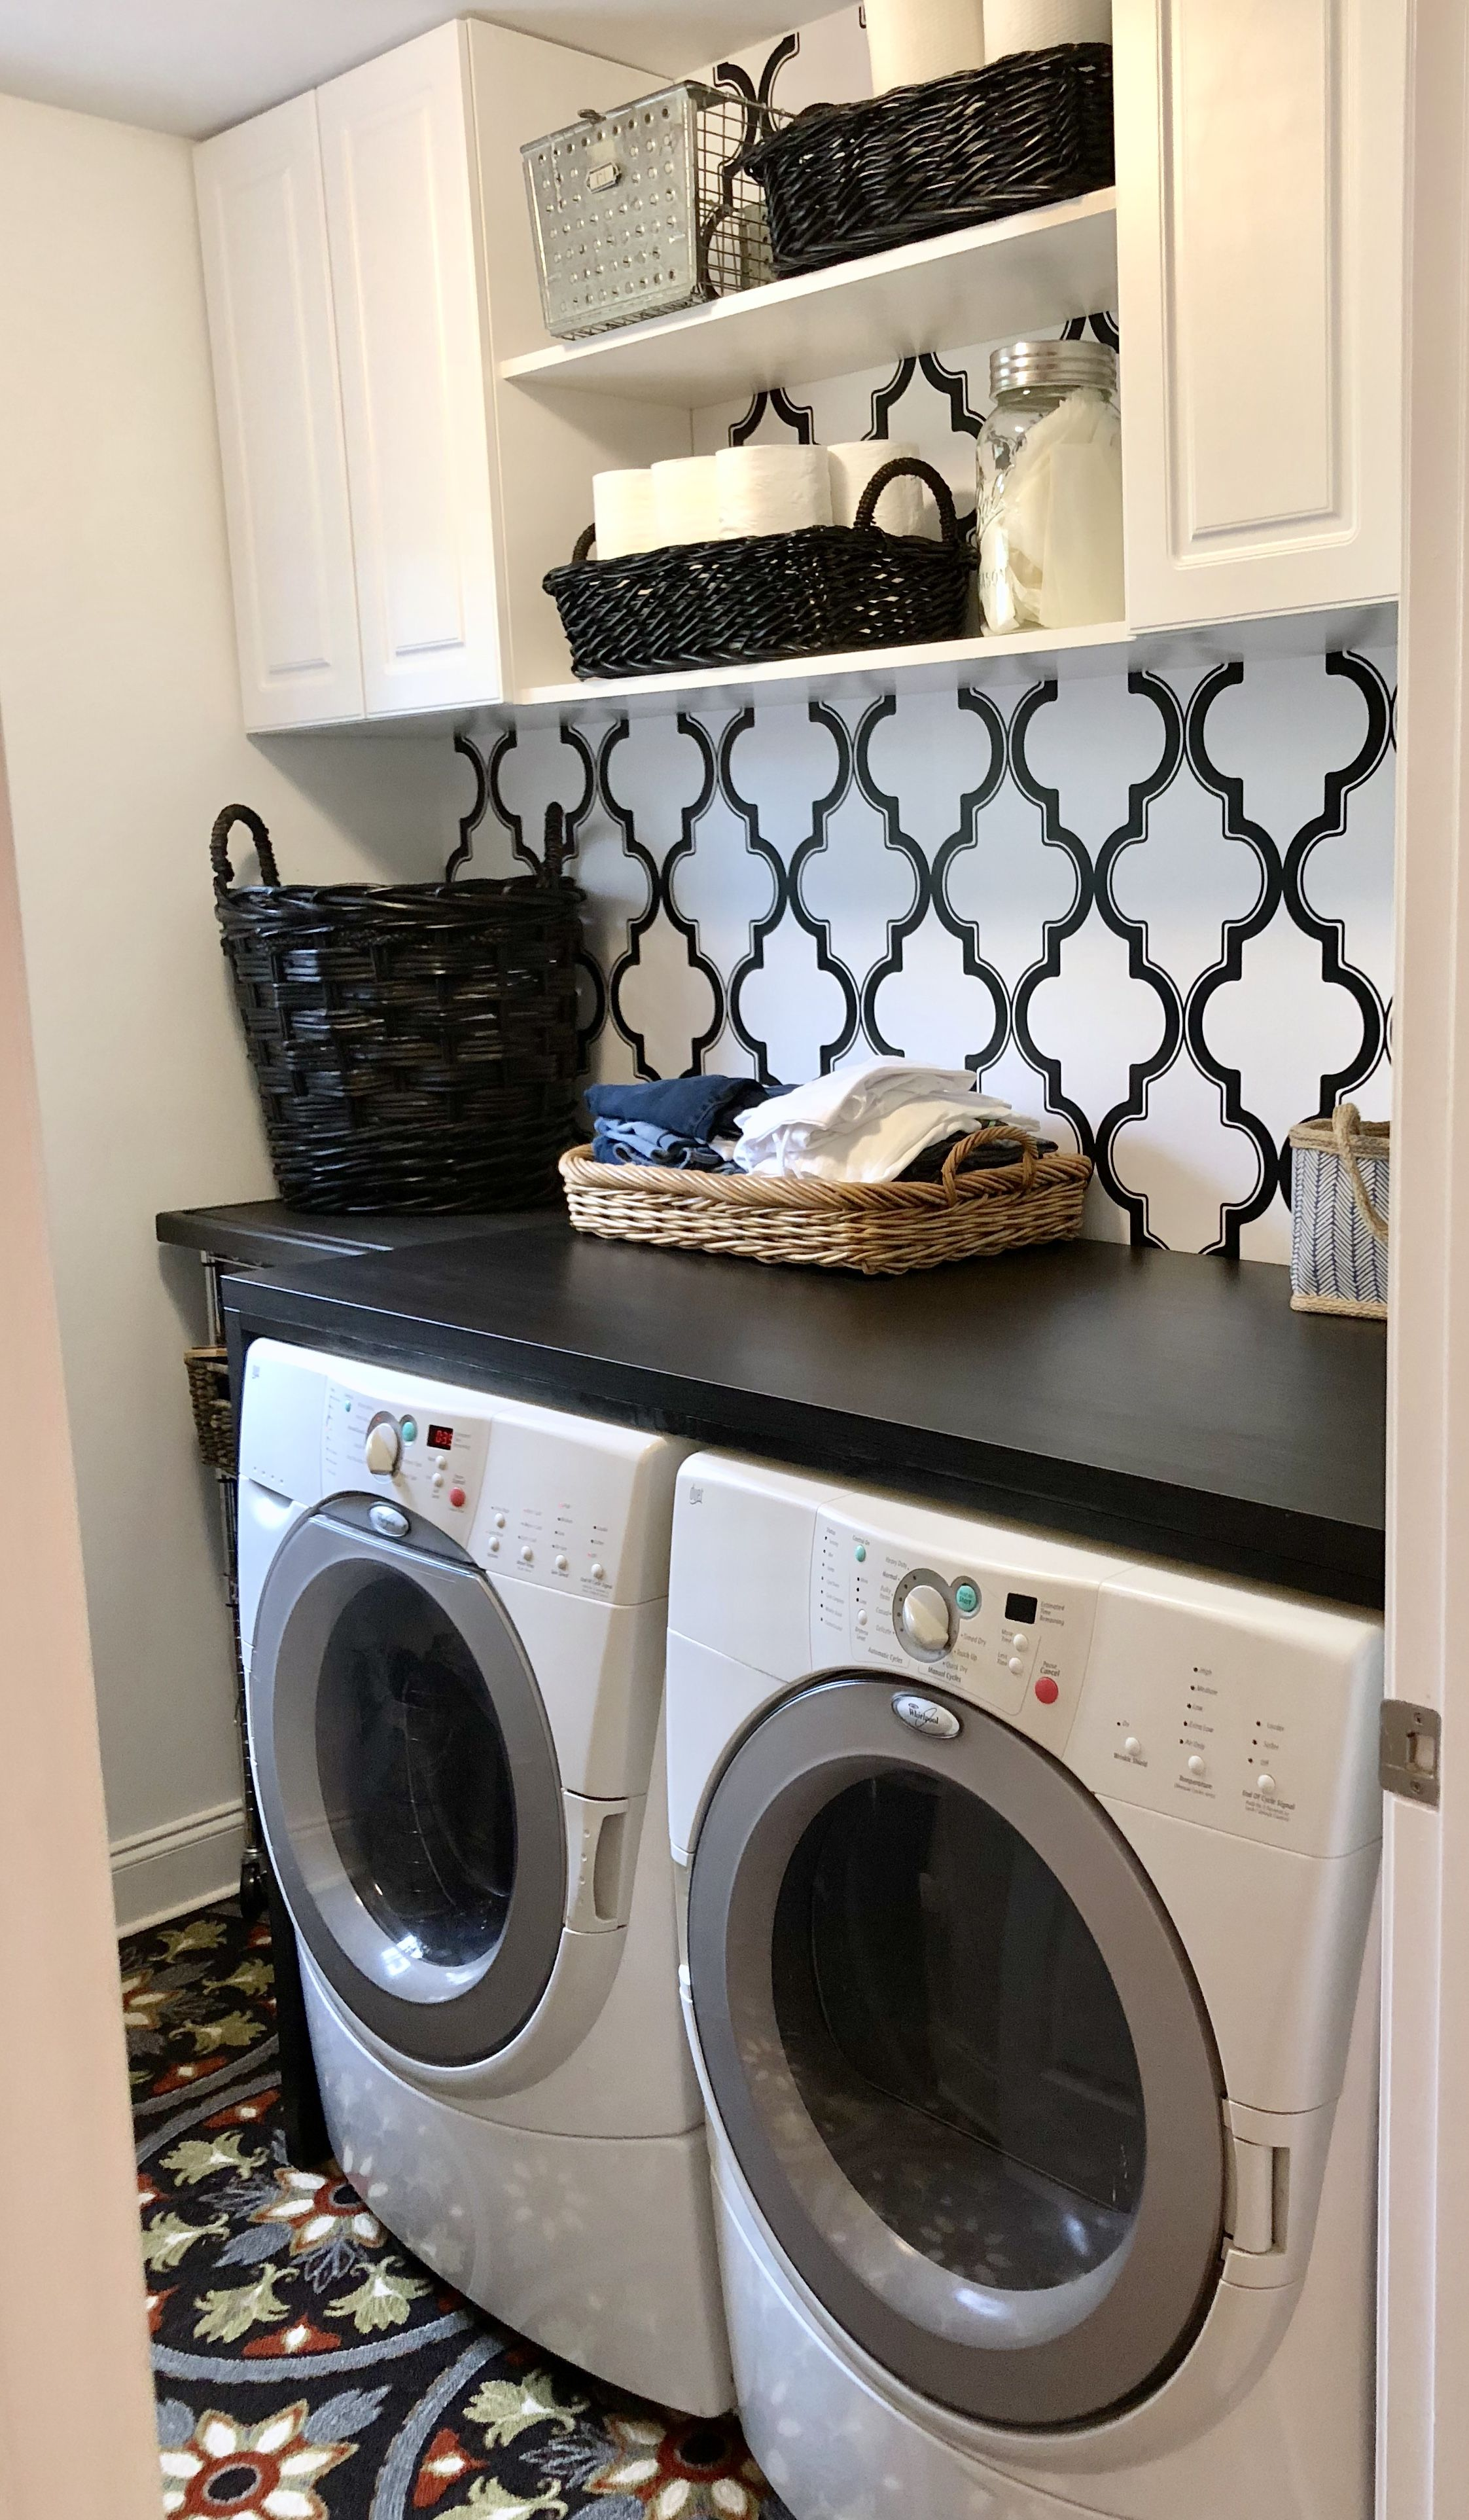 Added Countertop To Laundry Room Washer And Dryer Ikea Tabletop